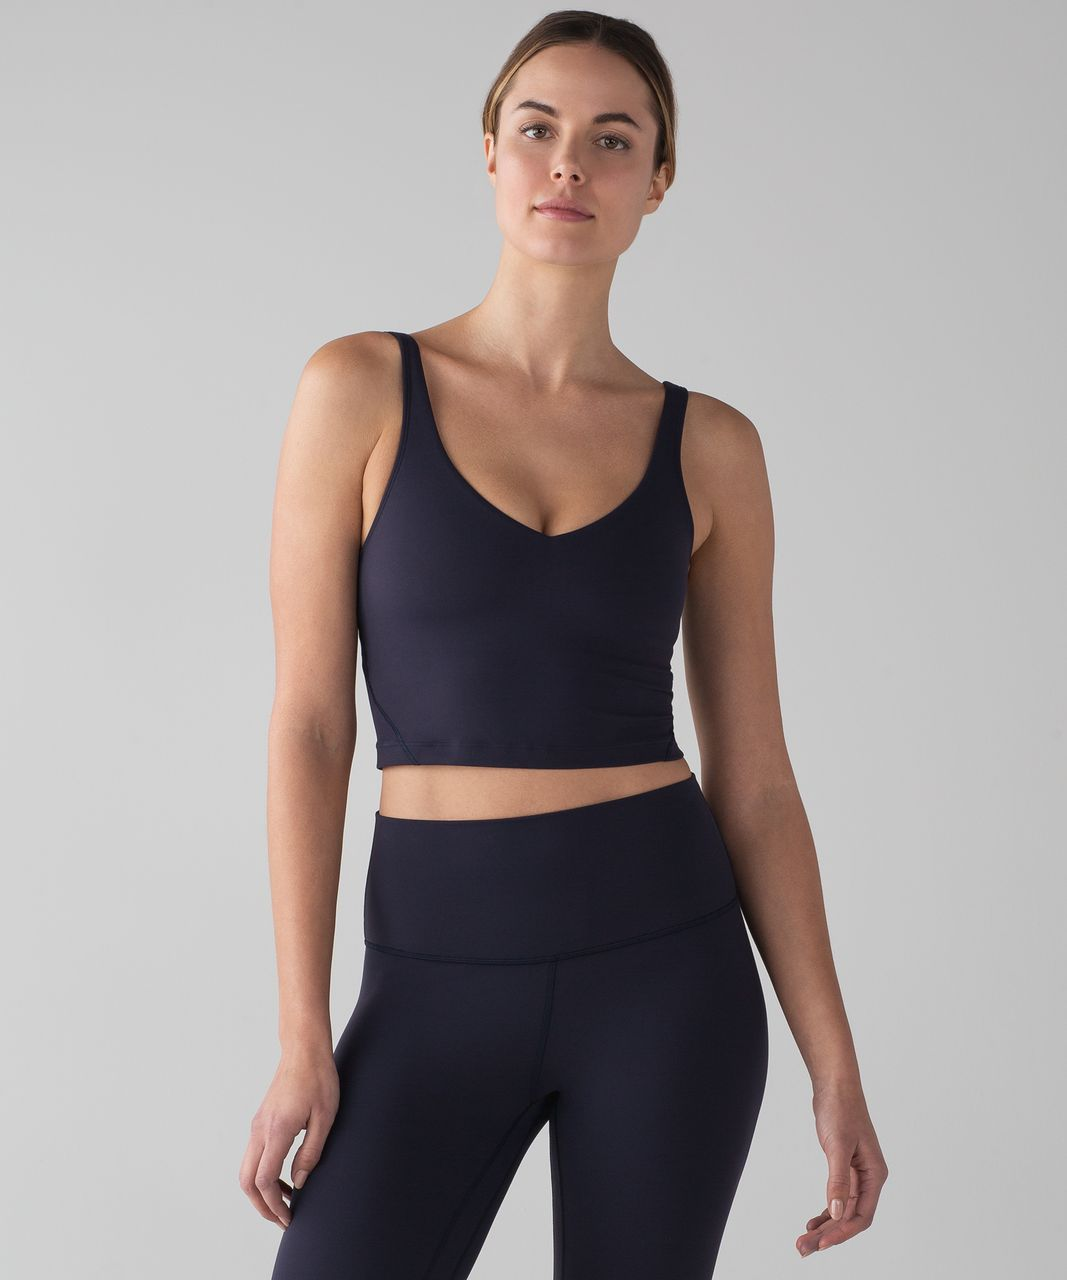 003a25b7f0d3c Lululemon Arise Tank - Midnight Navy - lulu fanatics